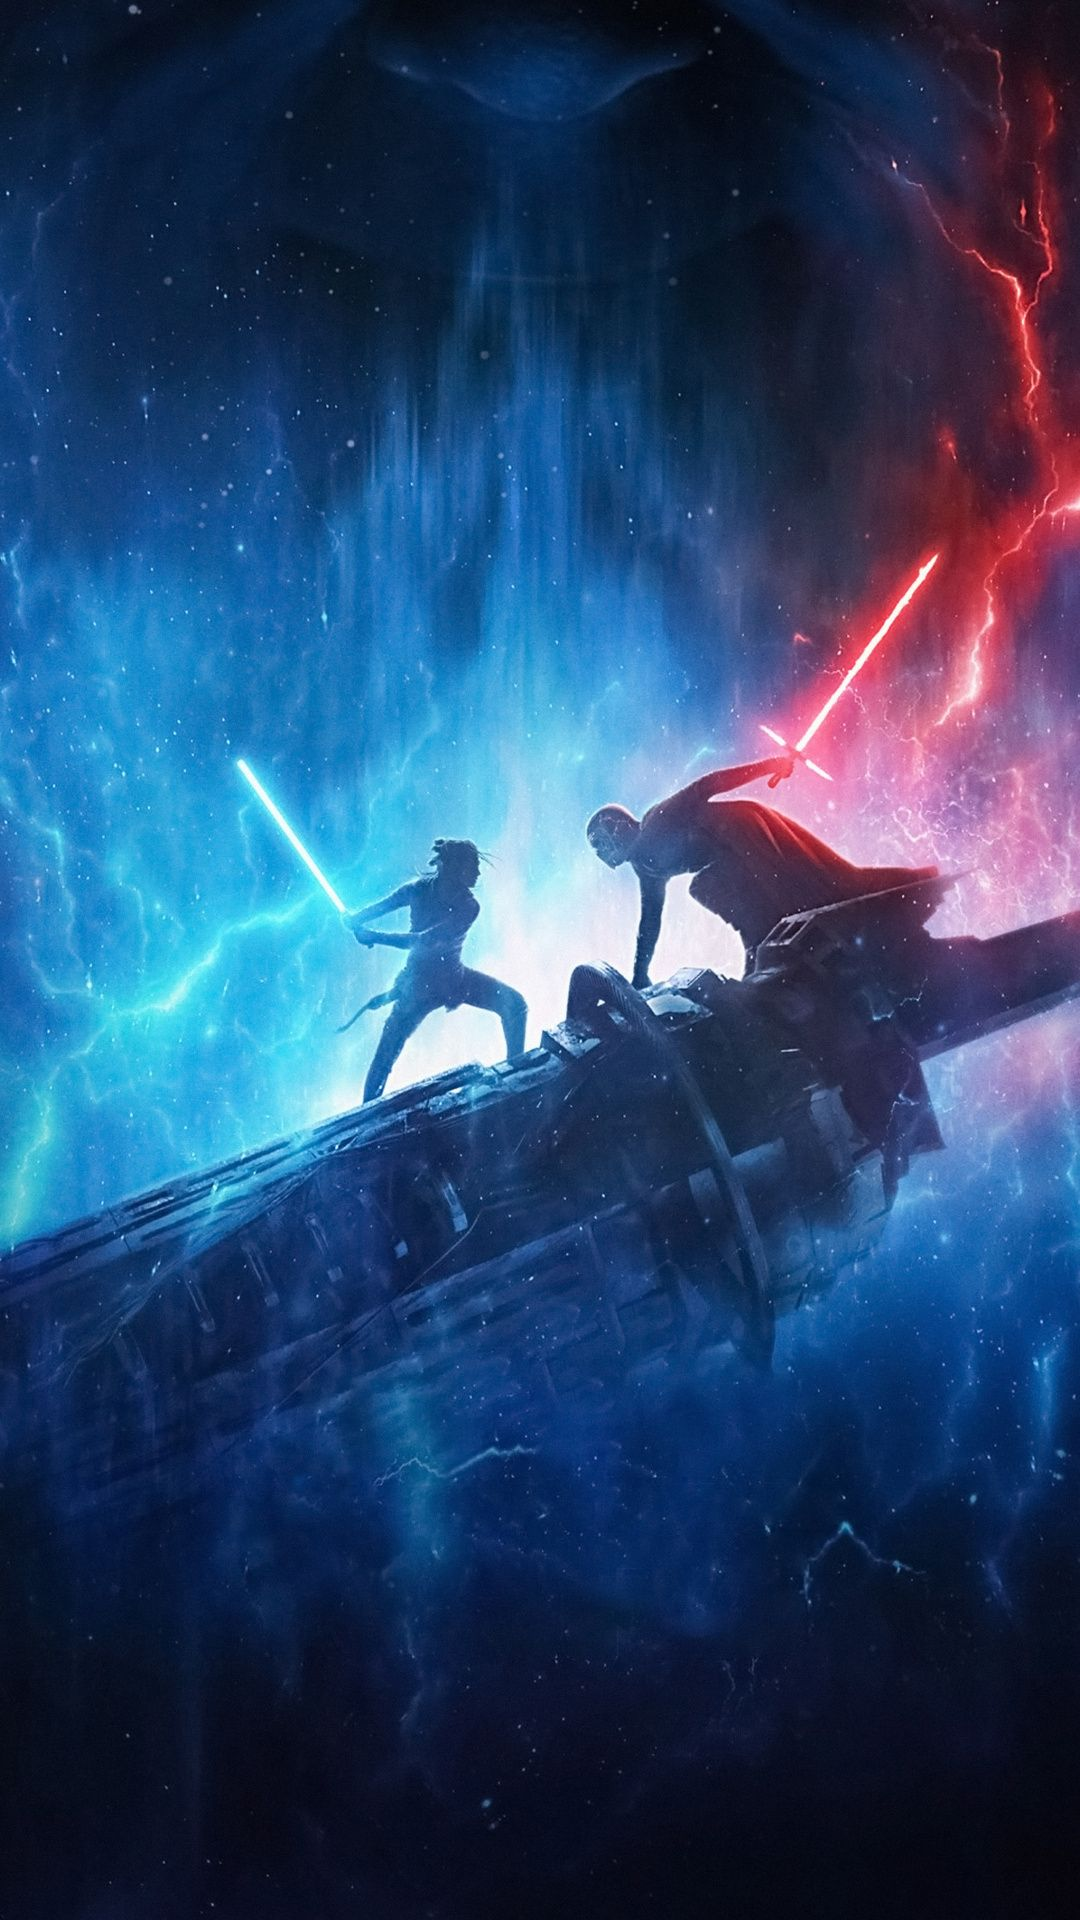 Download 1080x1920 wallpaper Star Wars The Rise of